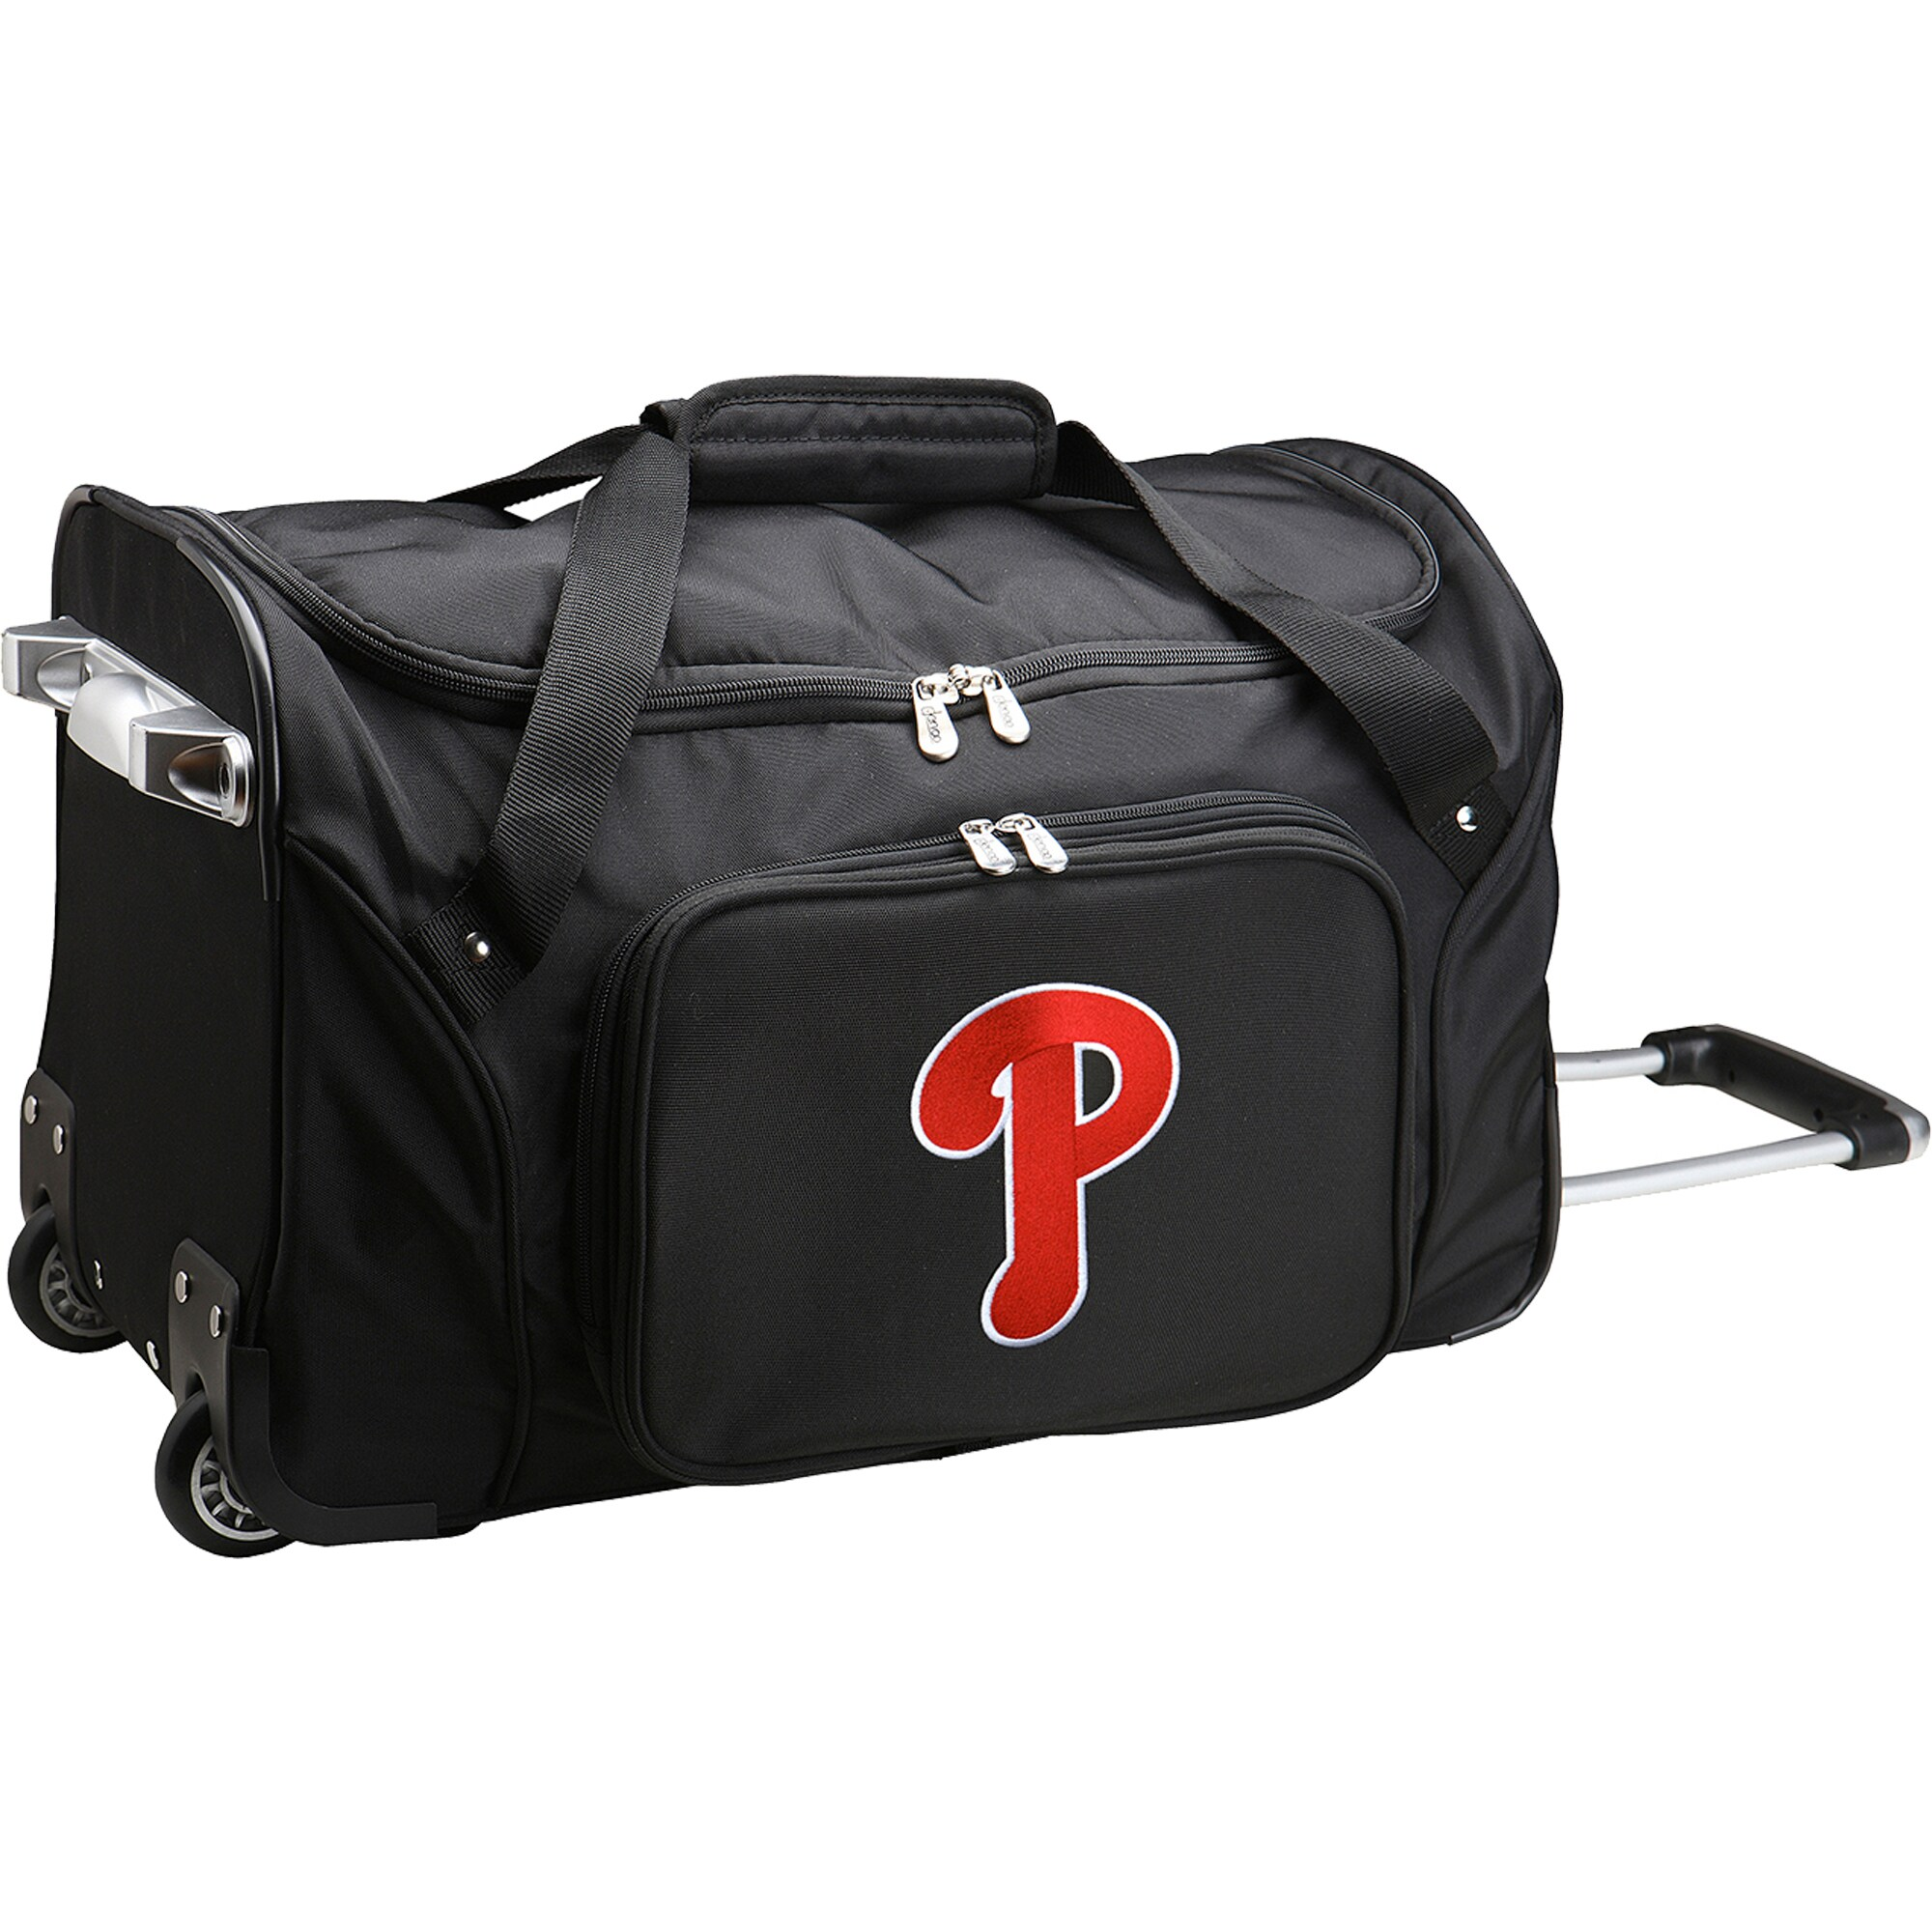 "Philadelphia Phillies 22"" 2-Wheeled Duffel Bag - Black"